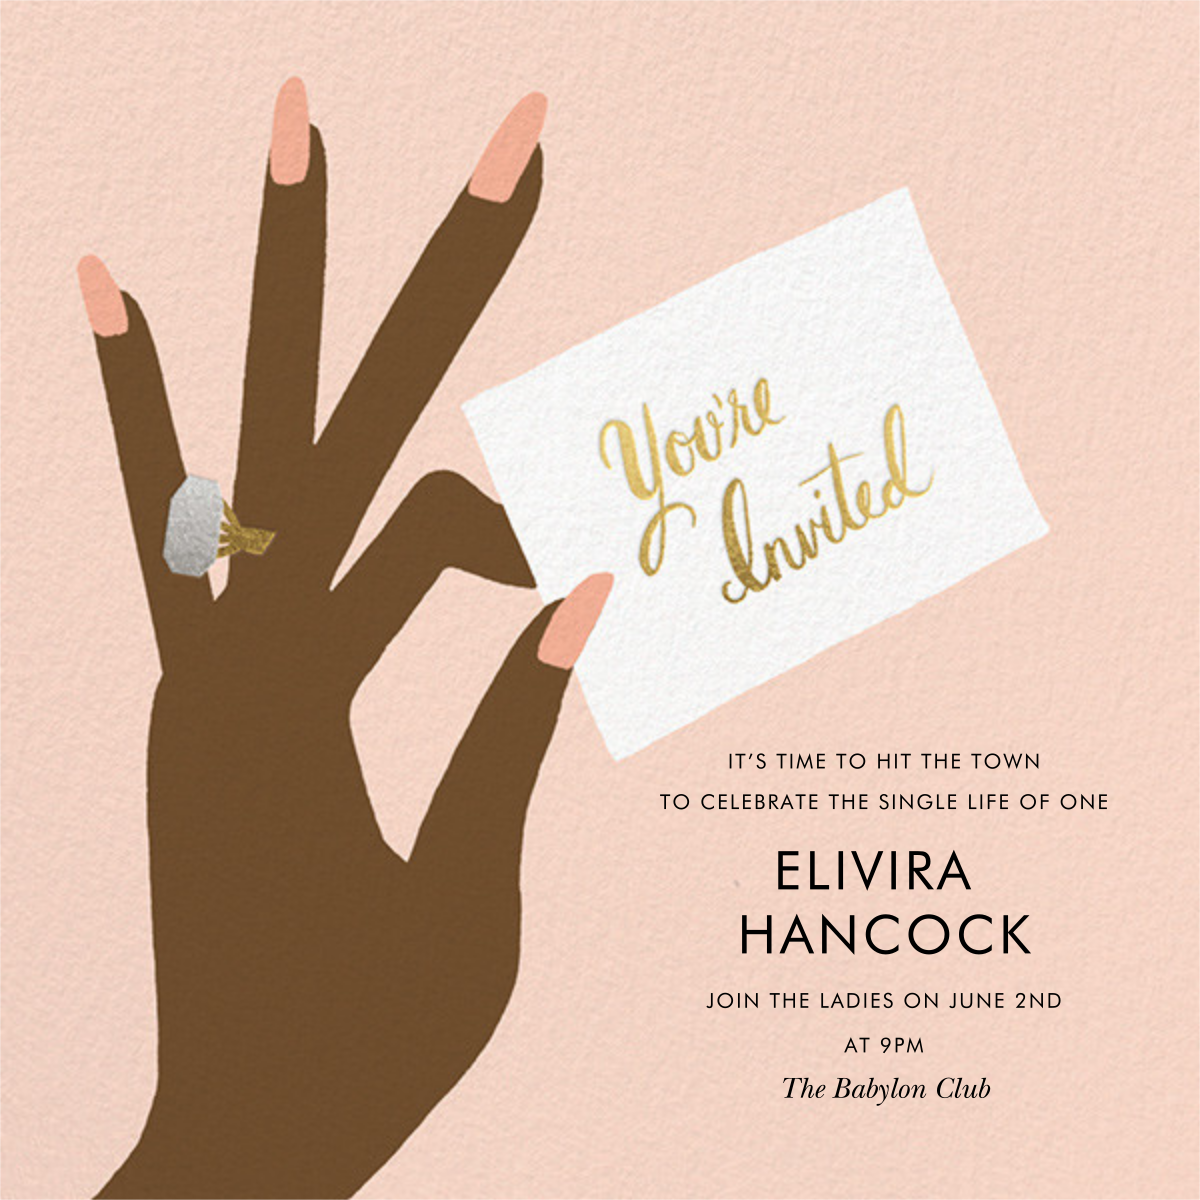 You're Invited Ring - Sherbet - Rifle Paper Co. - Bachelorette party